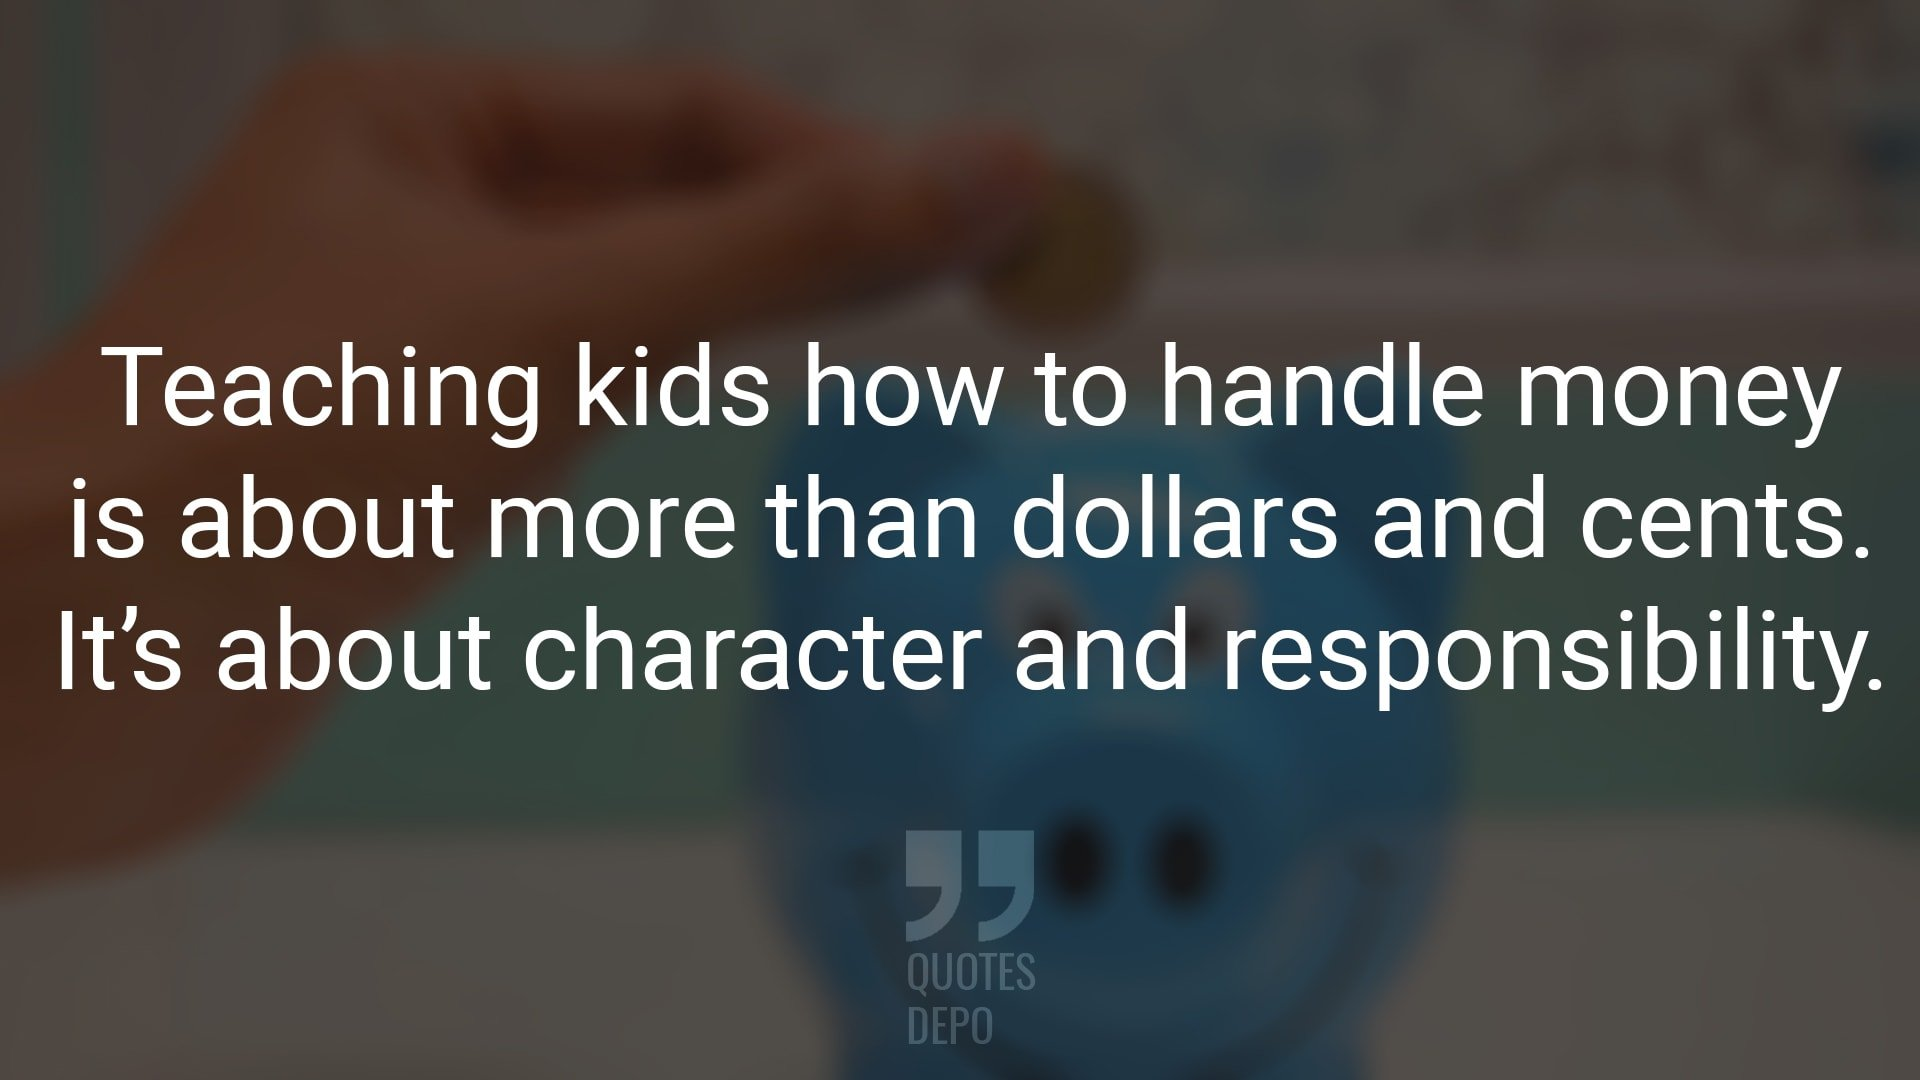 Teaching Kids How to Handle Money